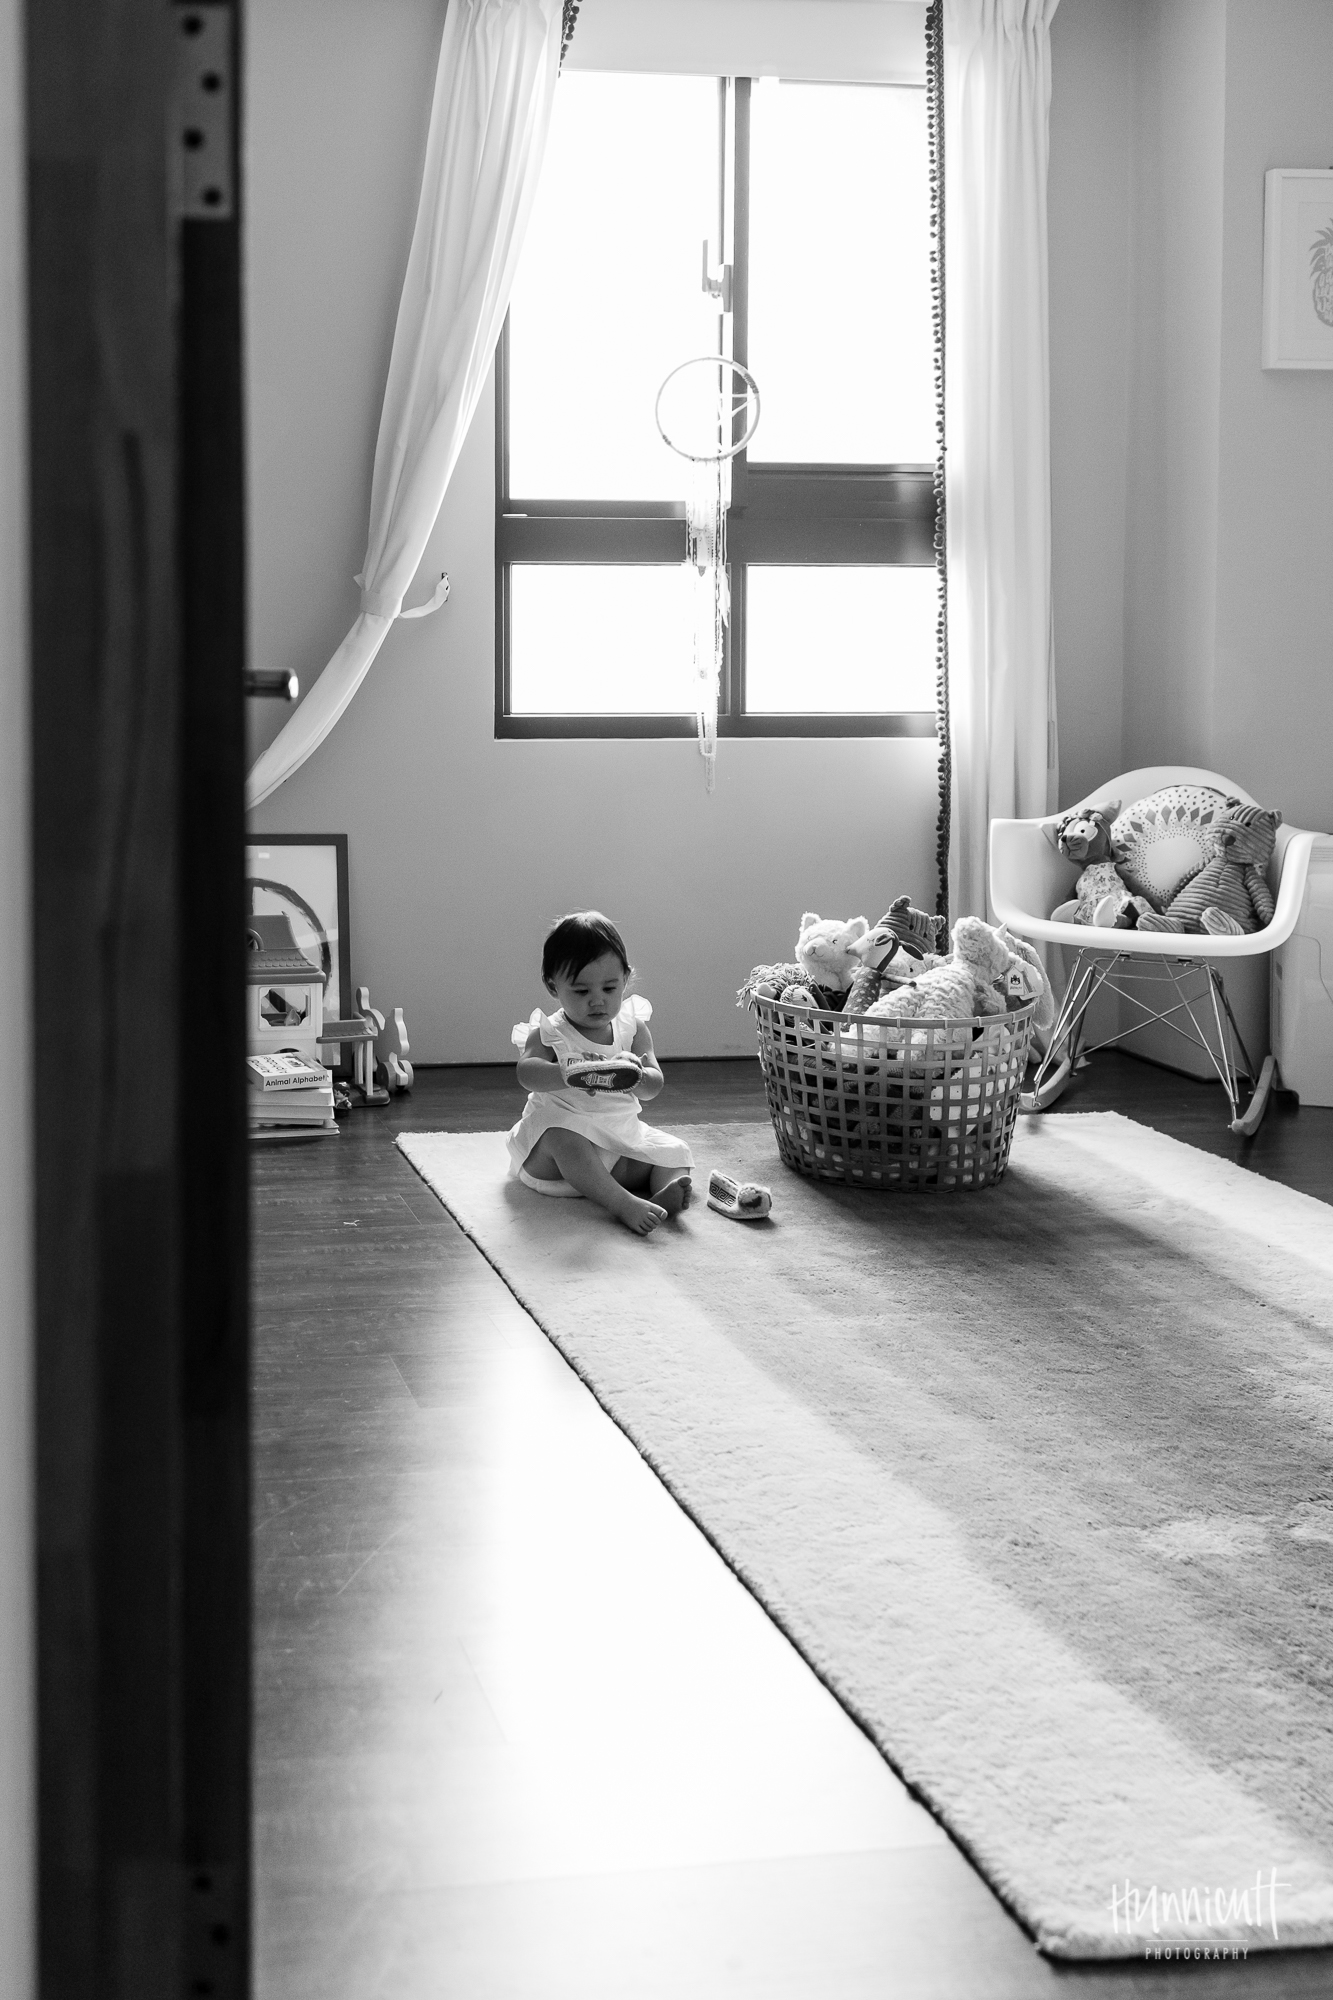 Family-Indoor-Lifestyle-Urban-Modern-HunnicuttPhotography-RebeccaHunnicuttFarren-NaturalLight-13